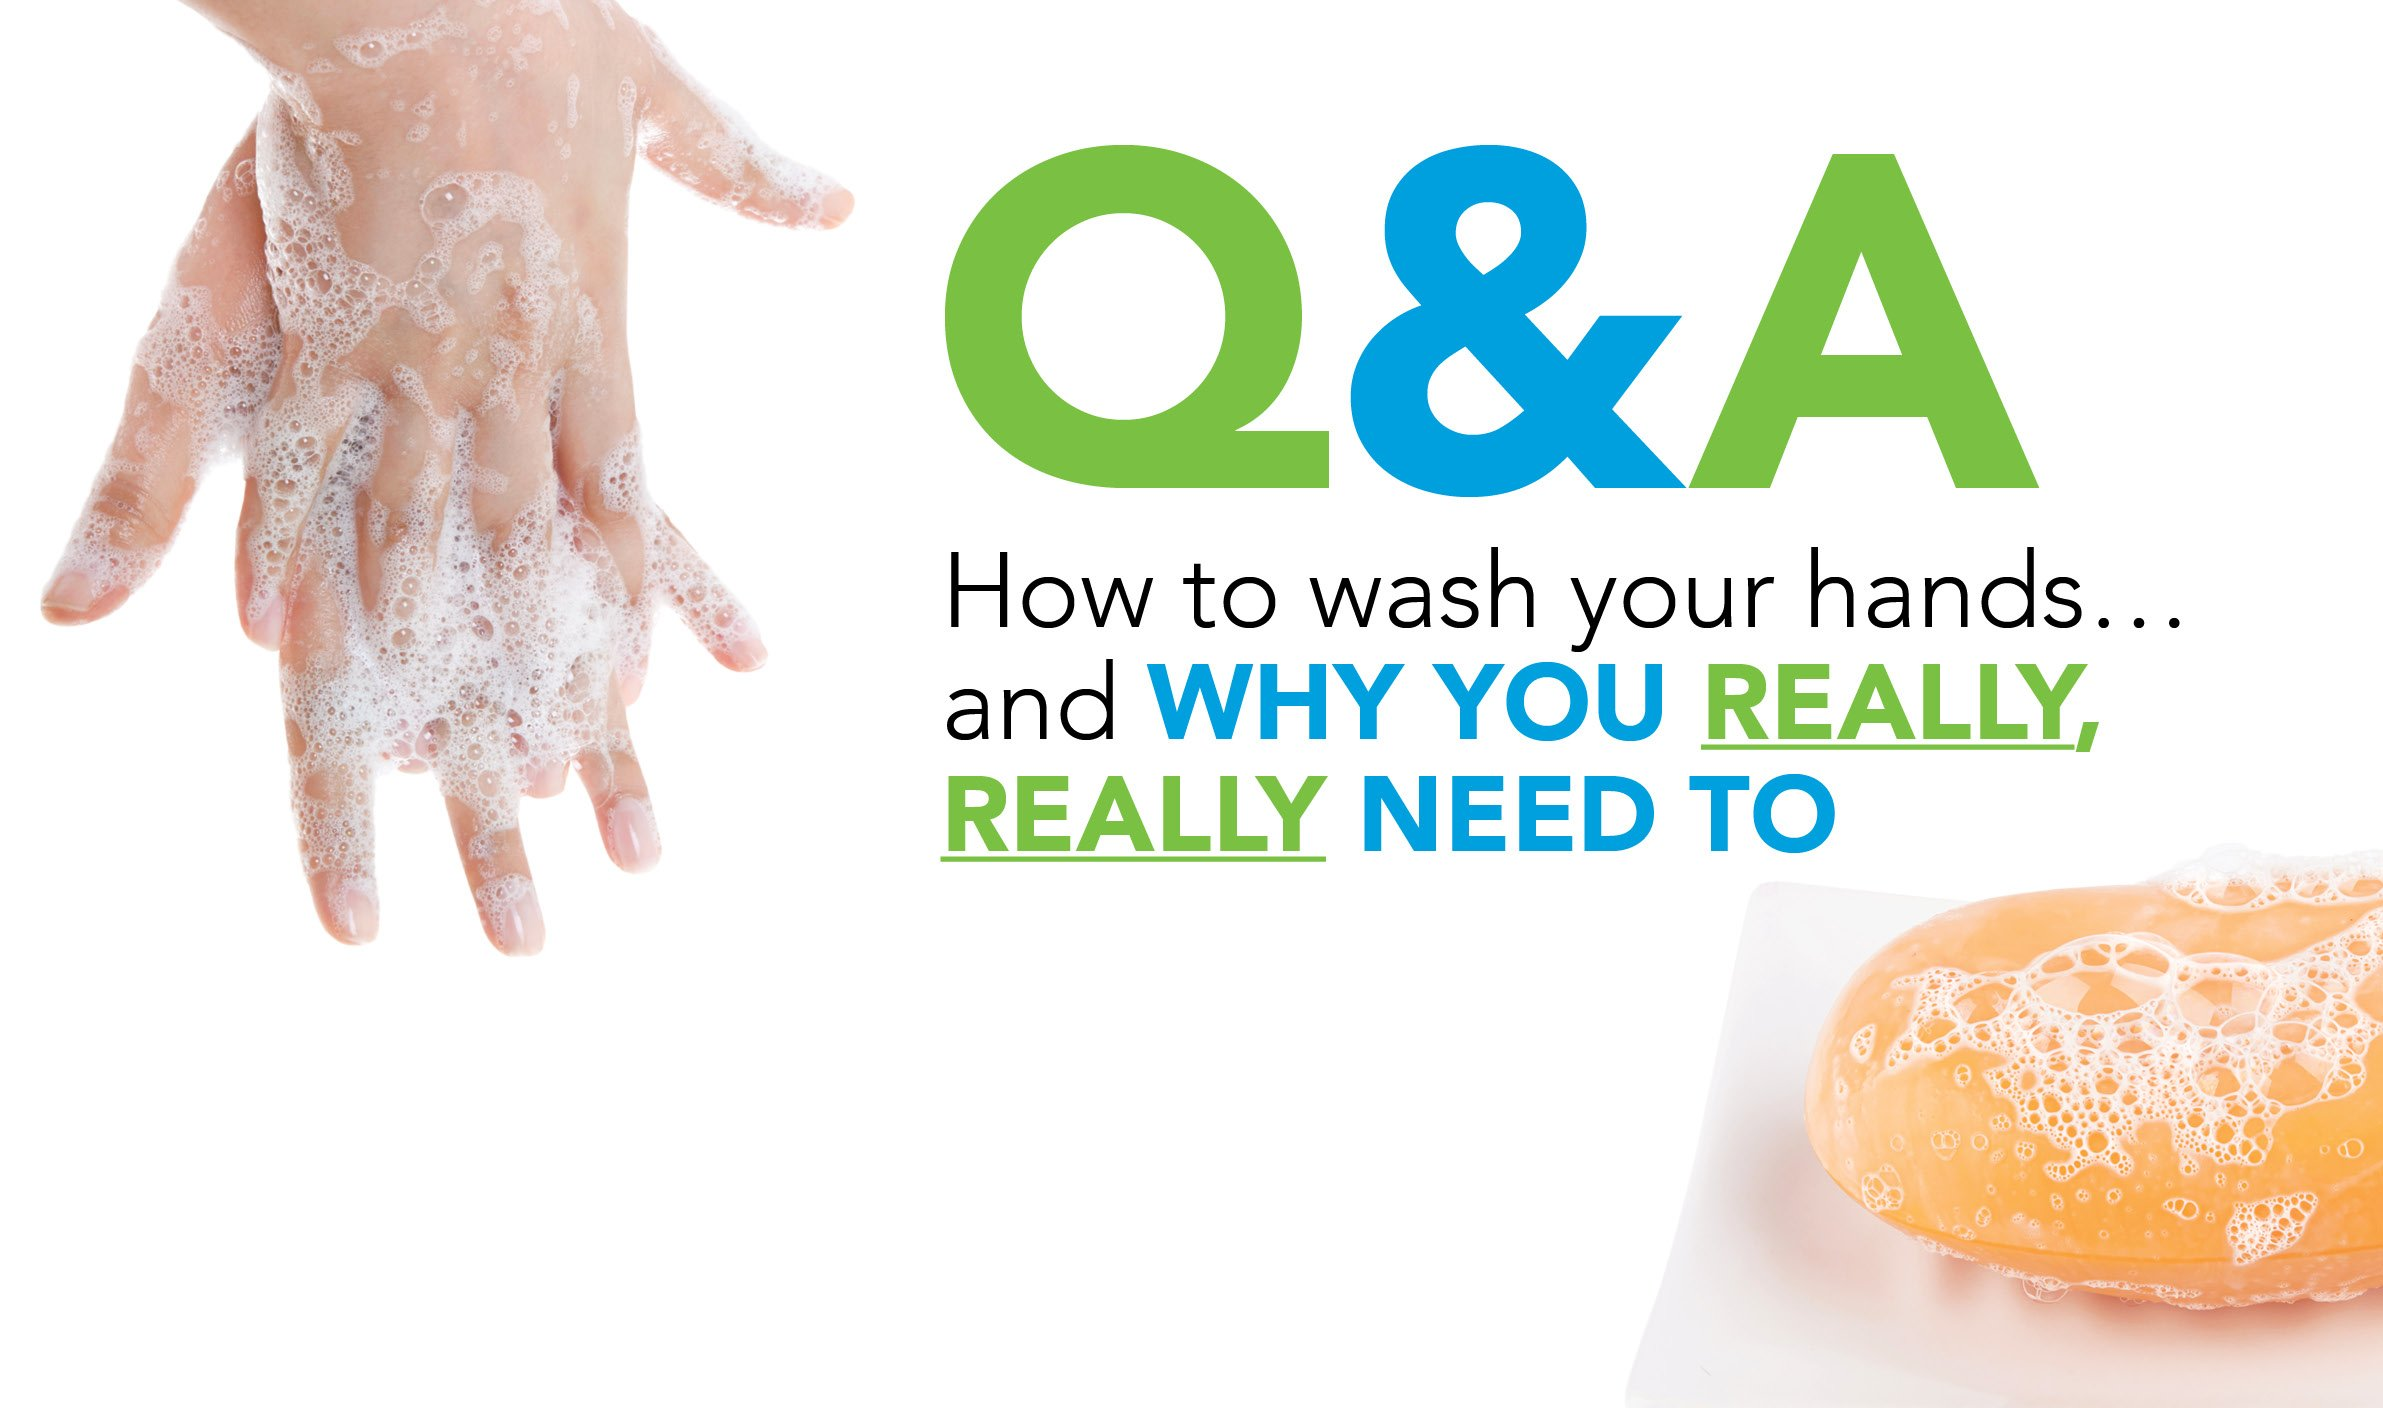 Health Connect Winter 2018 - Handwashing Q&A